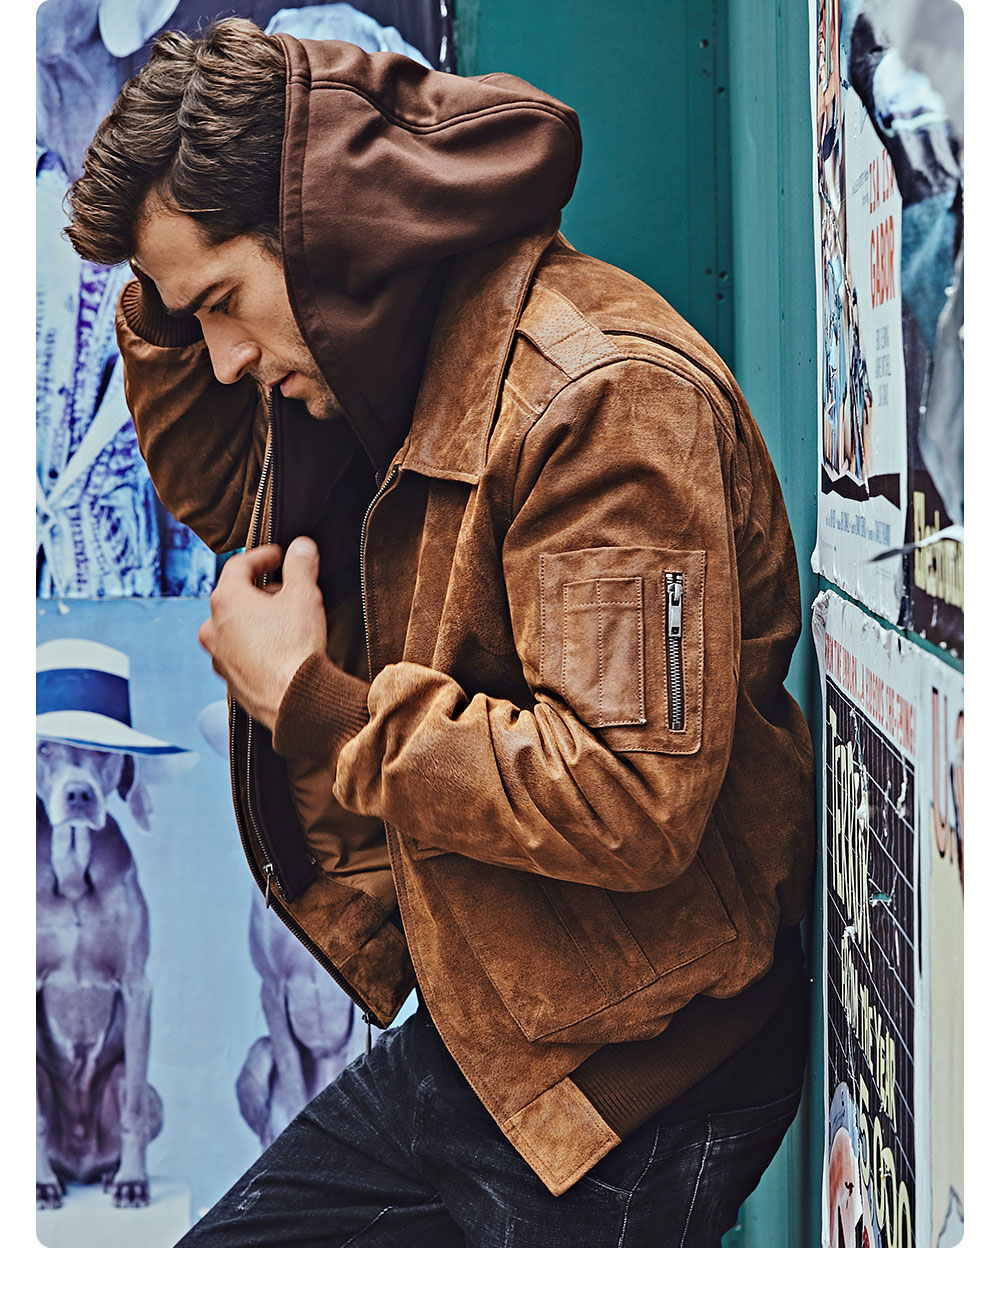 H61a9c9aaf09f44a0bef0372f788bc9feC FLAVOR New Men's Genuine Leather Bomber Jackets Removable Hood Men Air Forca Aviator winter coat Men Warm Real Leather Jacket